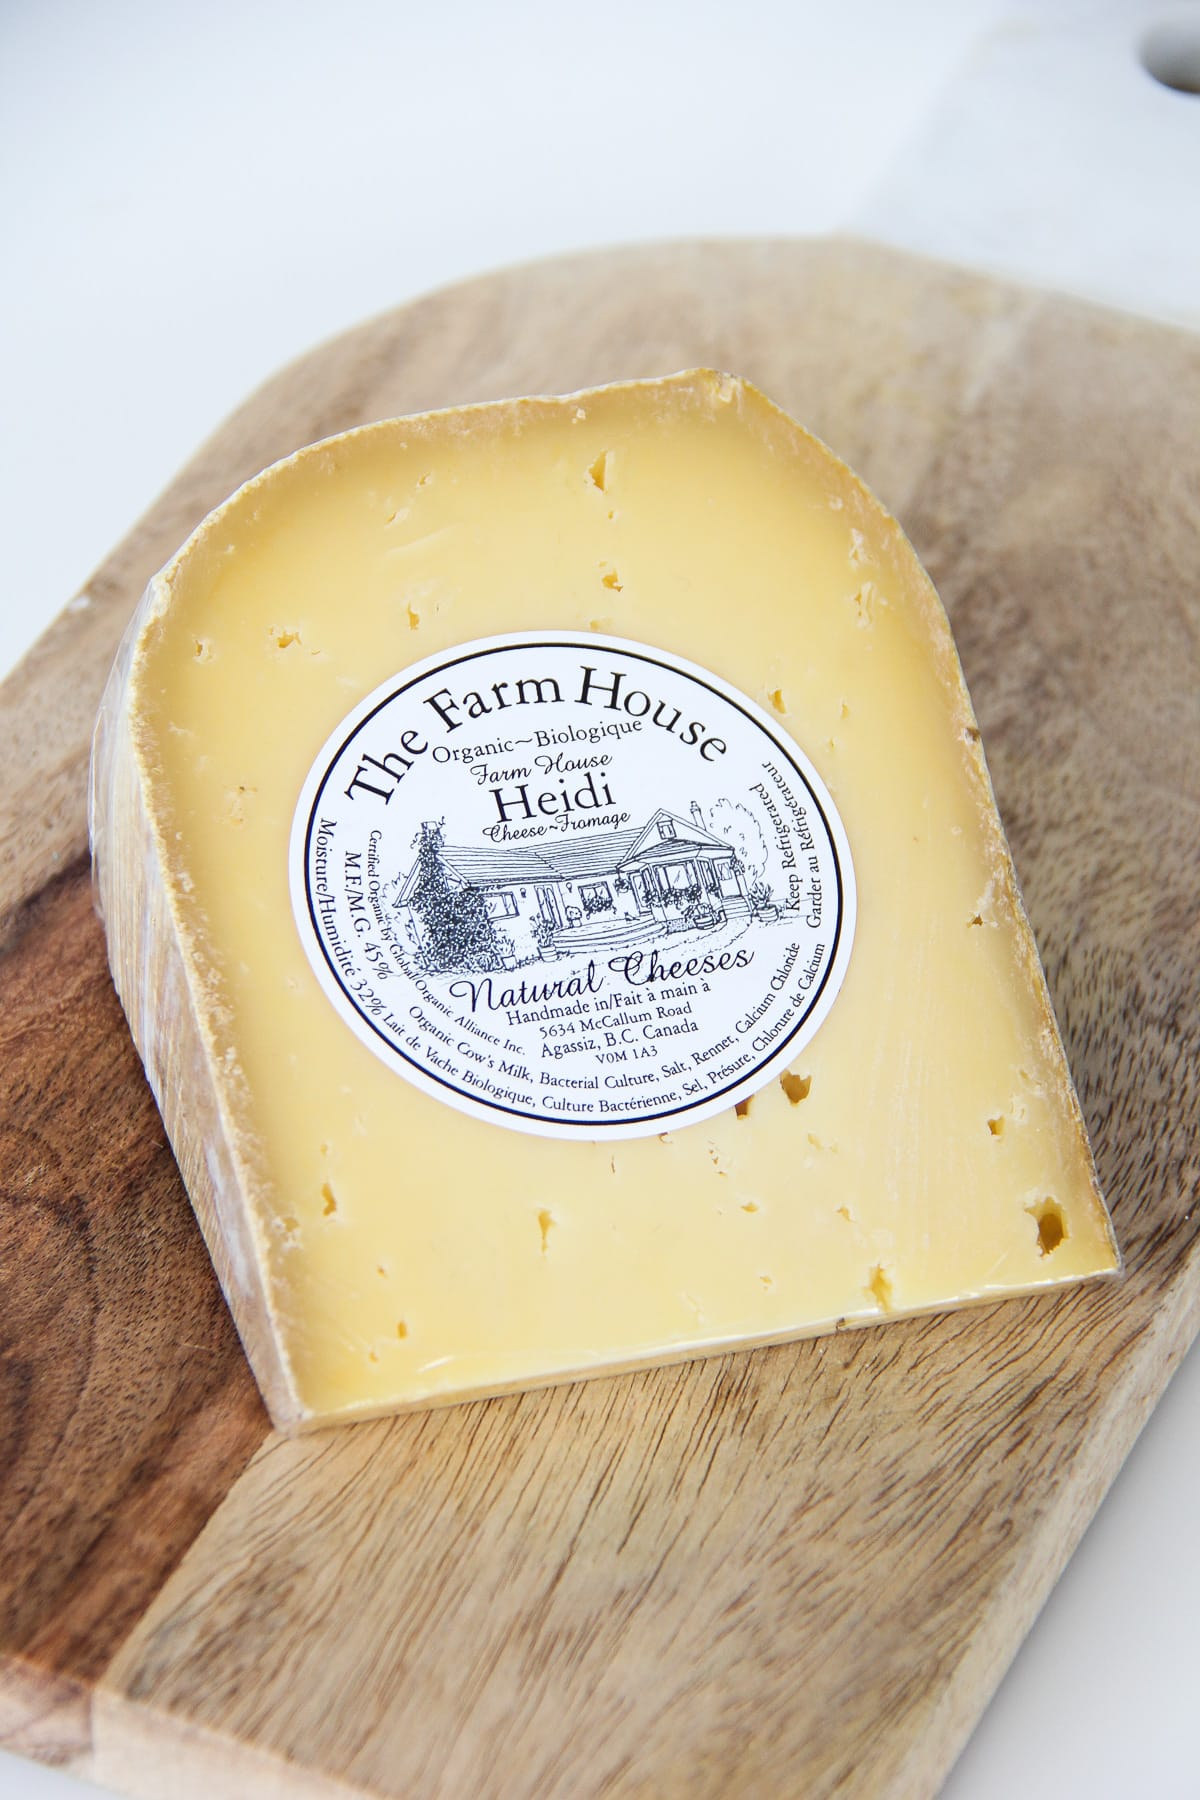 Heidi from The Farm House Natural Cheeses